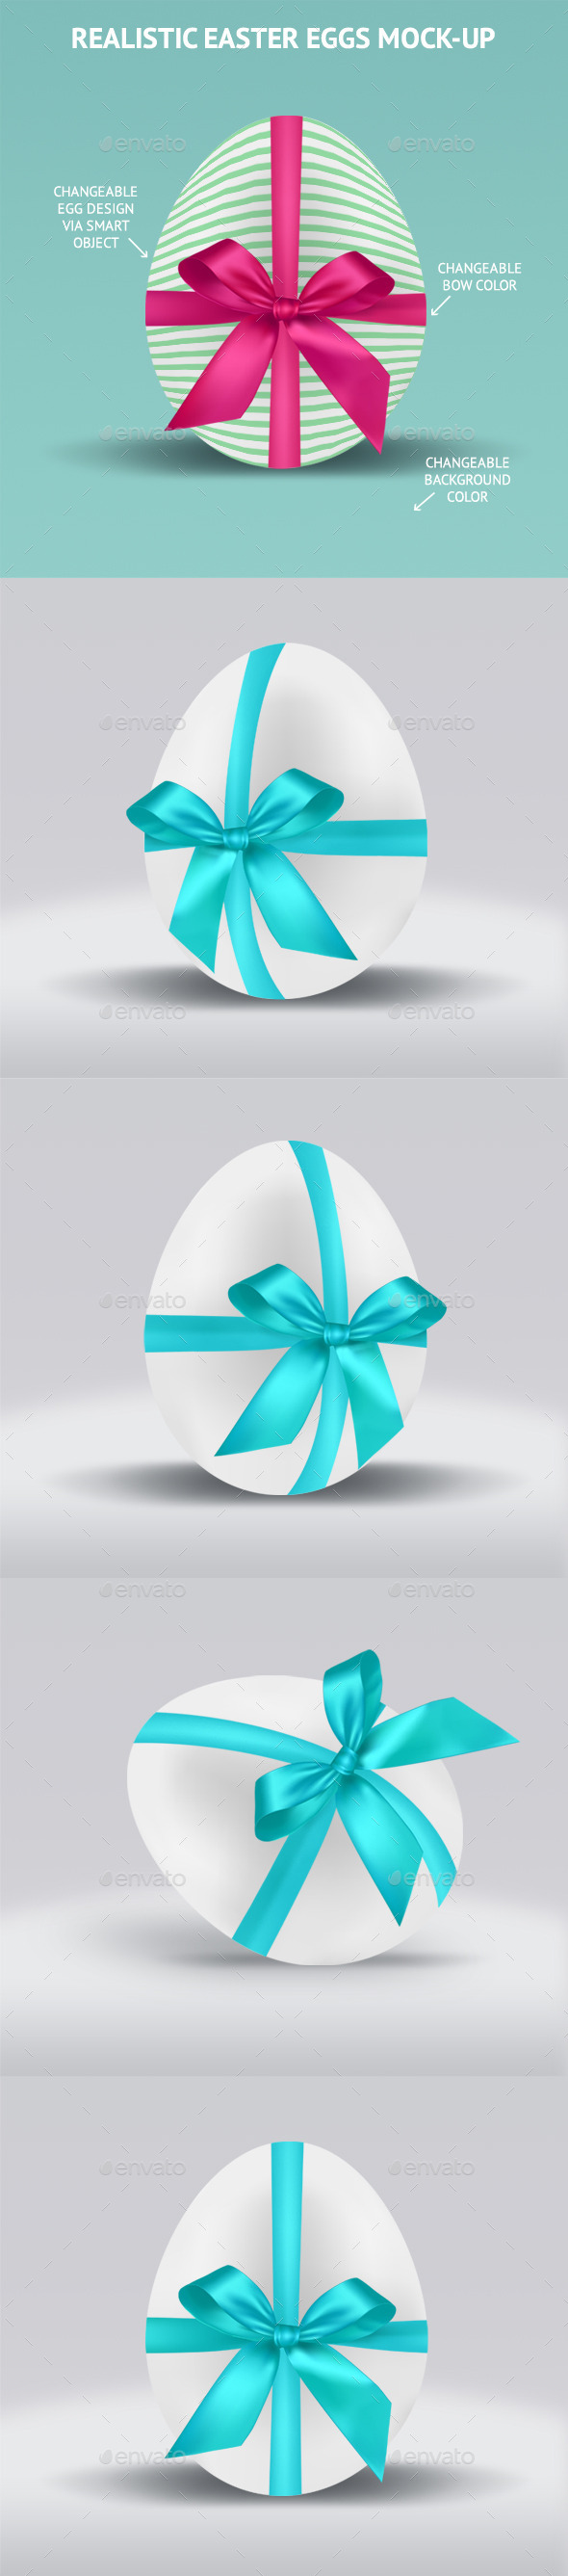 GraphicRiver Realistic Easter Eggs Mock-up 10995229